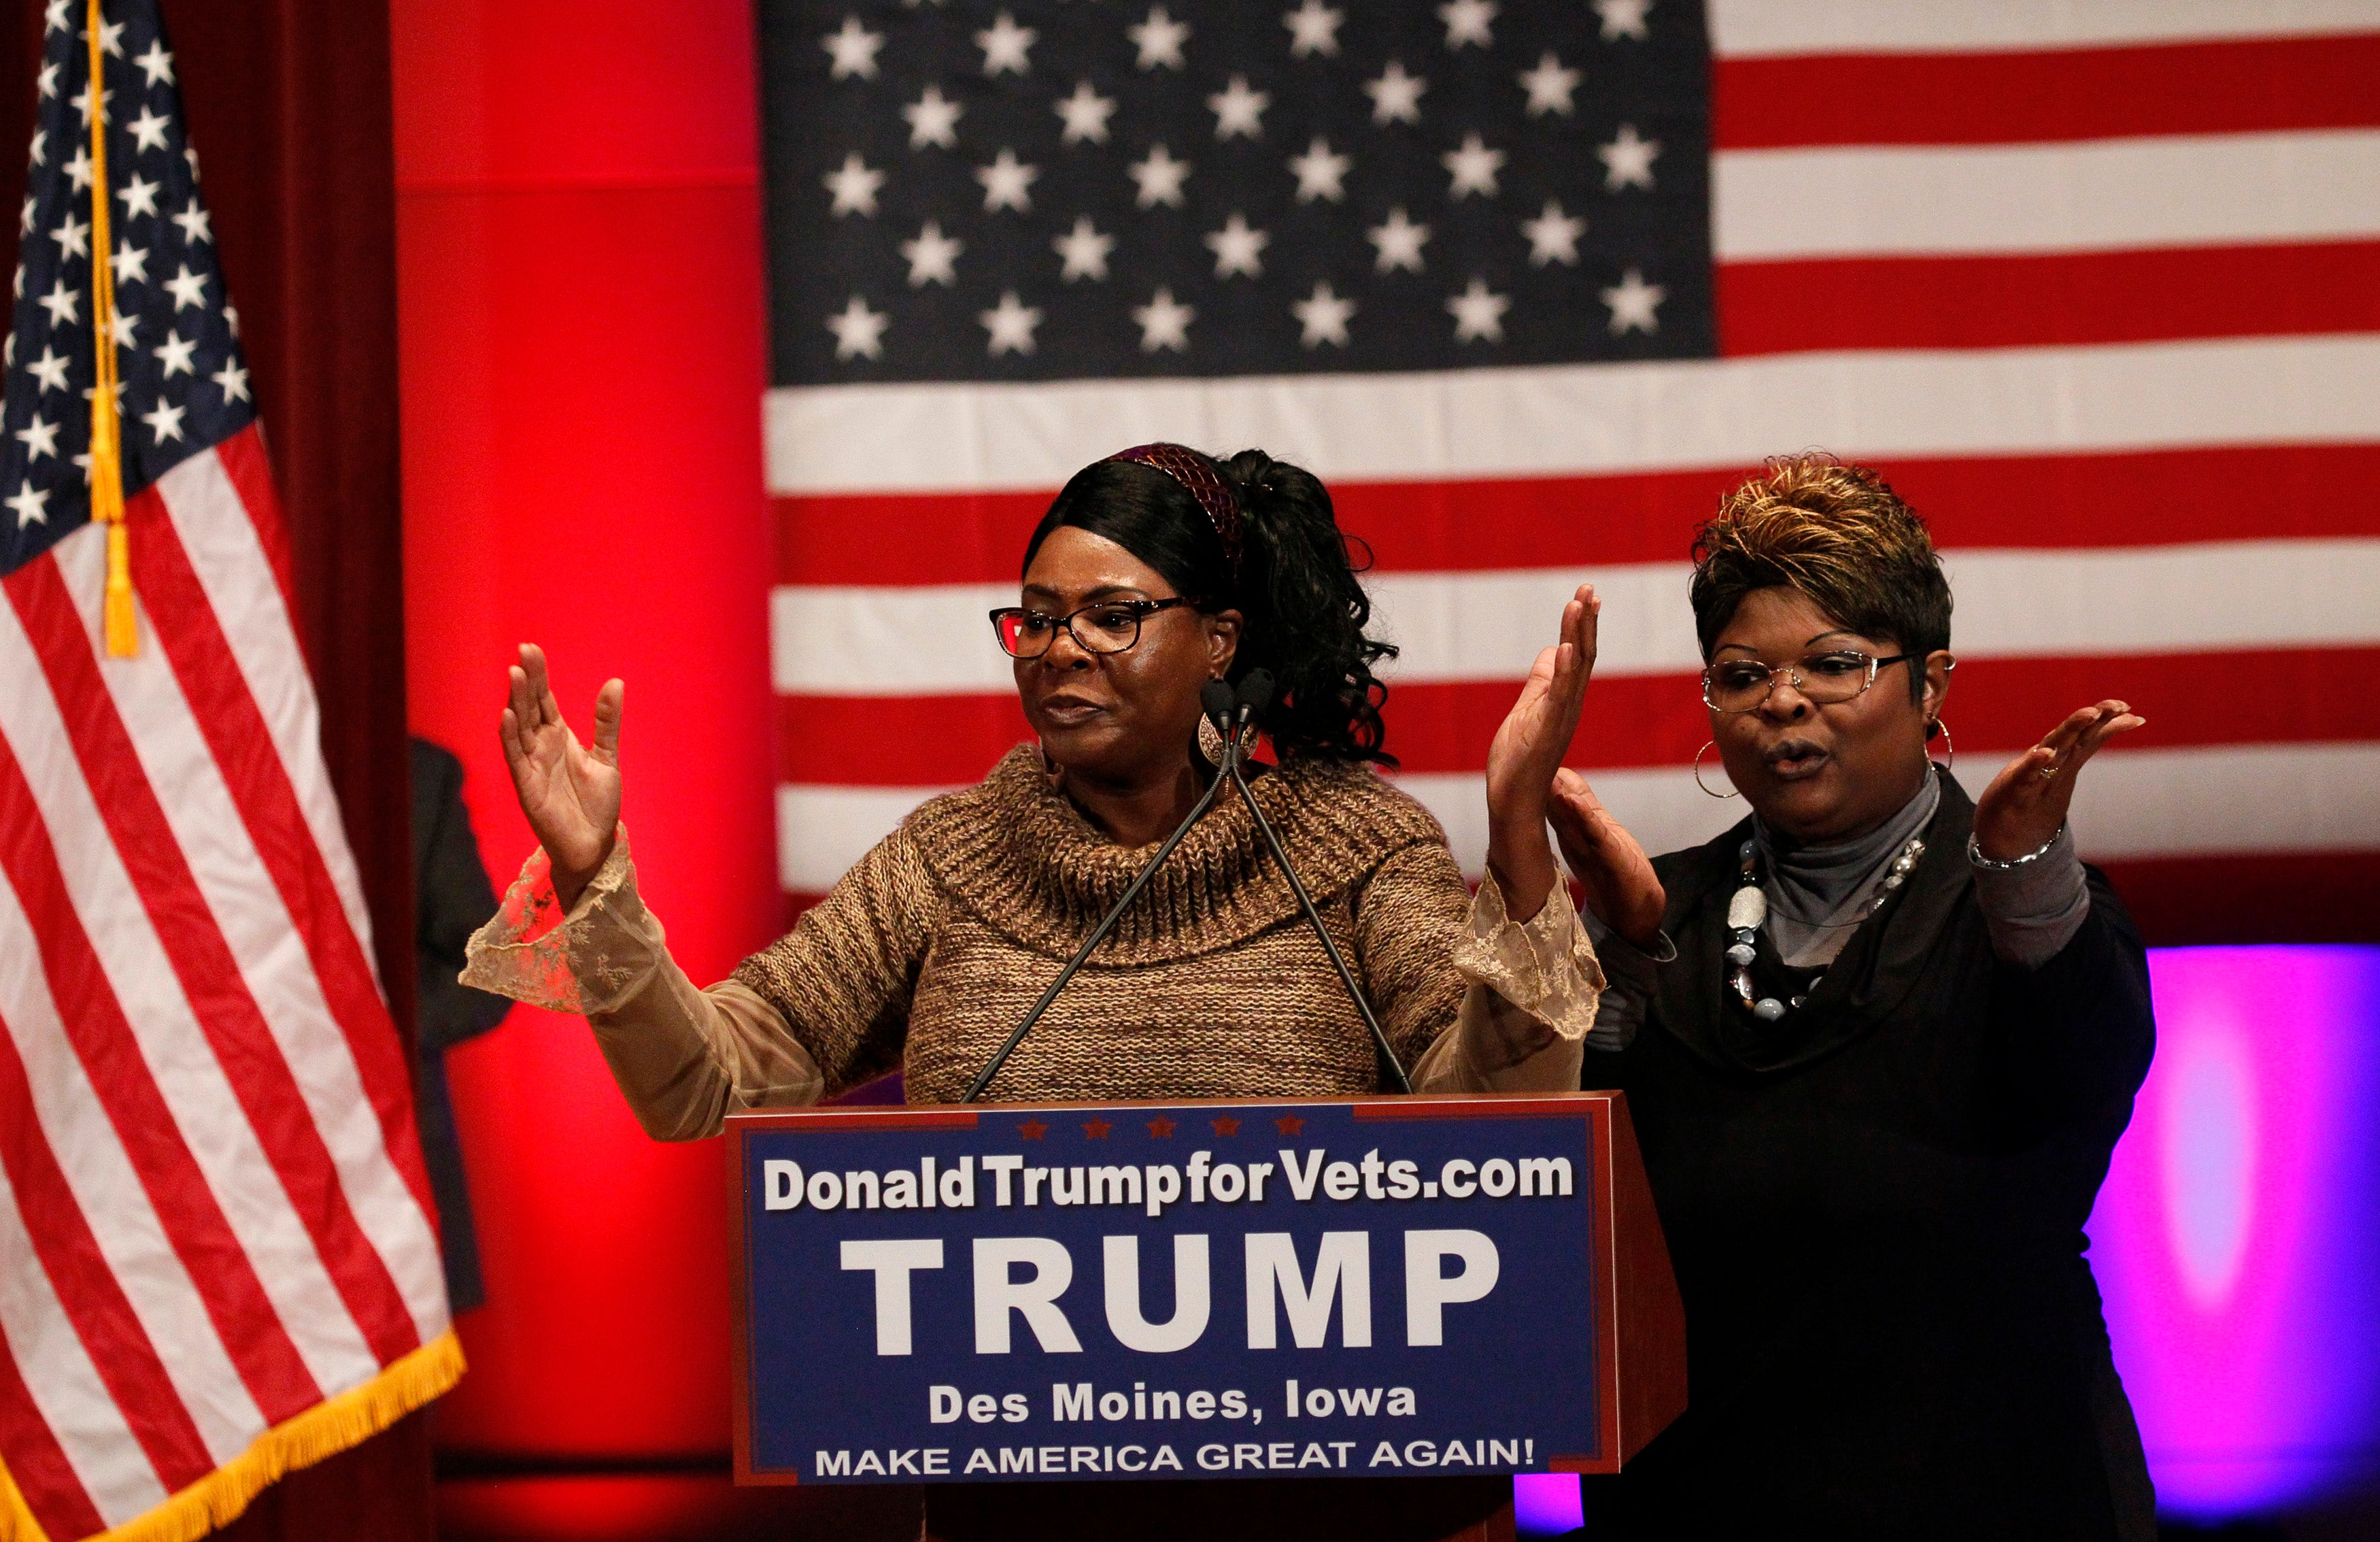 FEC records appear to show that the campaign paid the two pundits, but they claim otherwise.